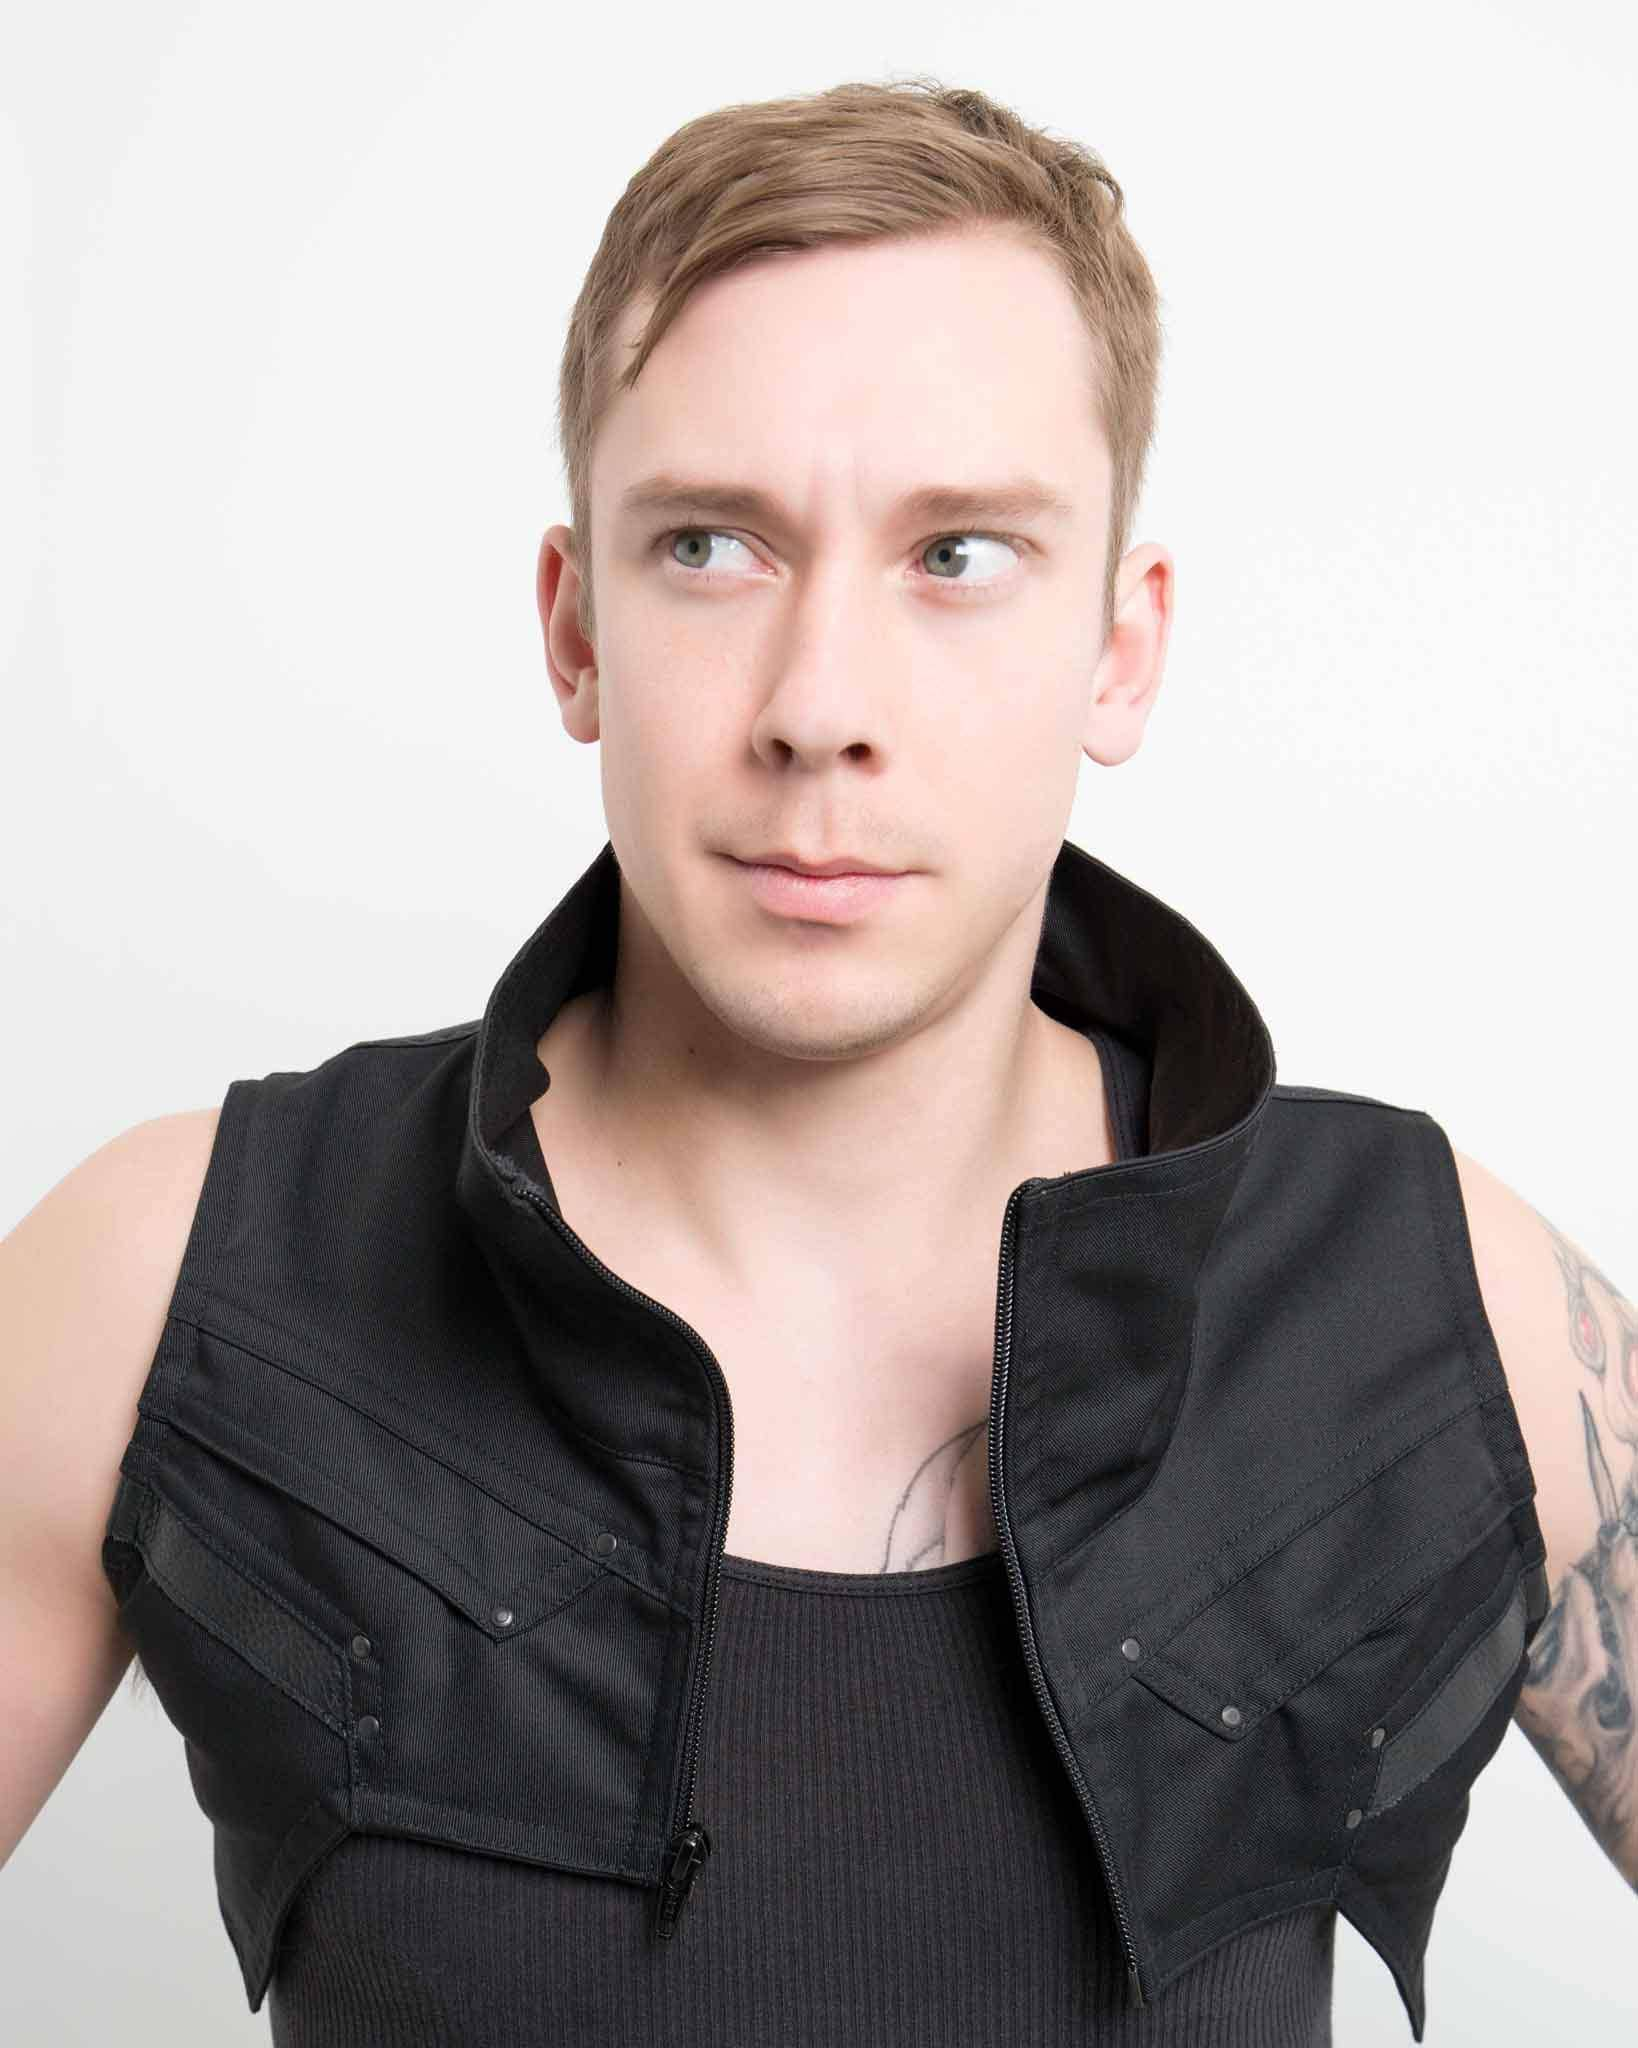 Sector Vest - Crisiswear Clothing